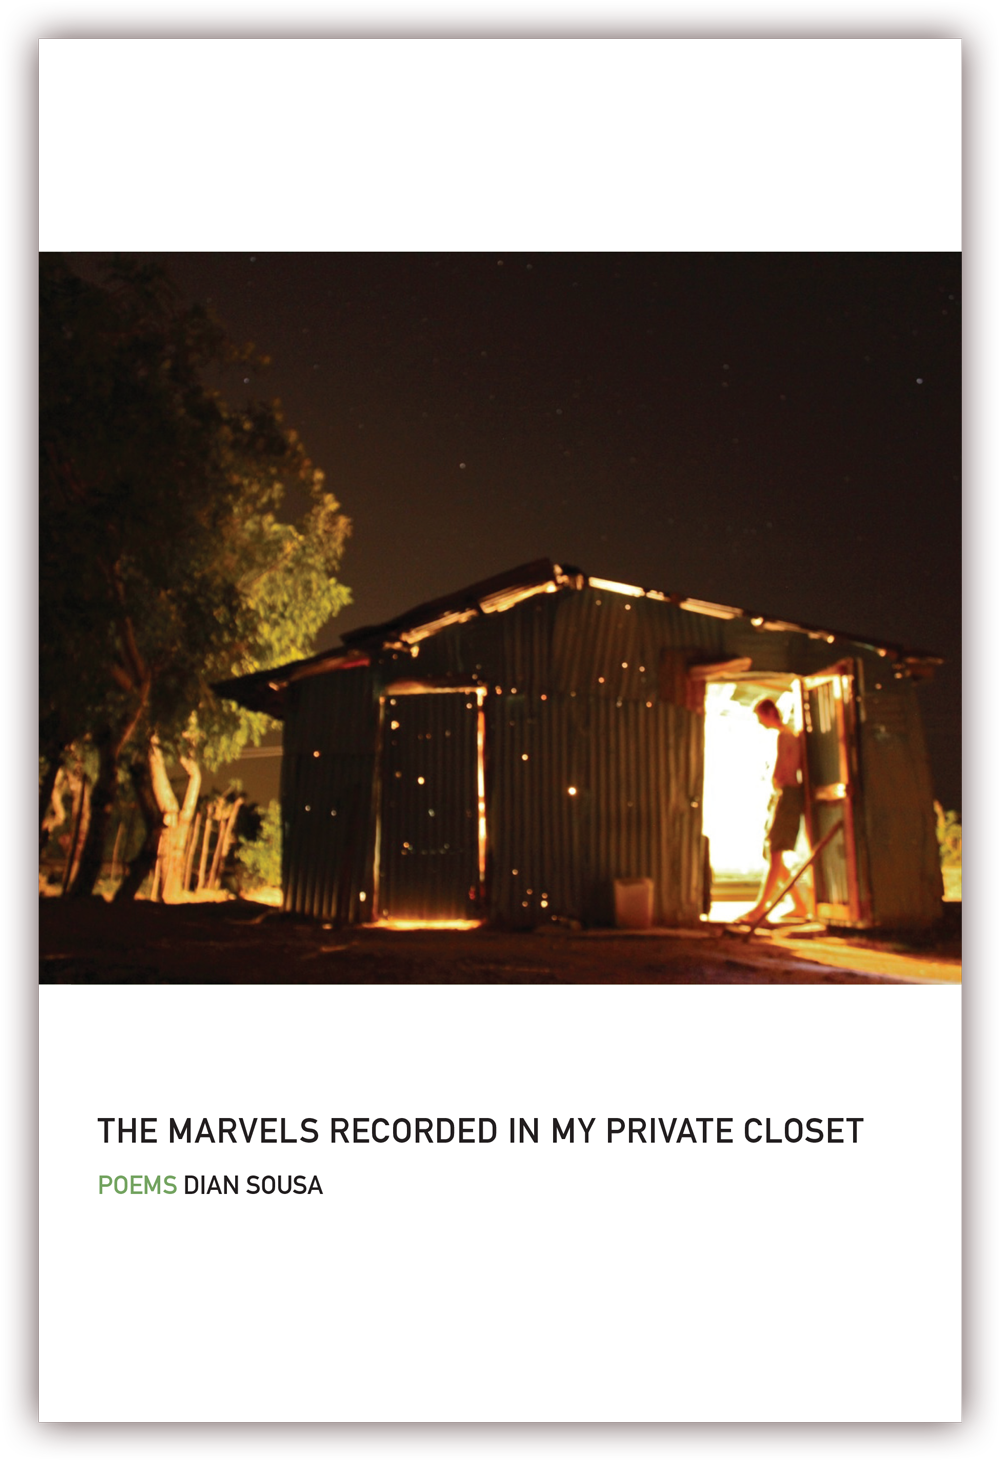 The Marvels Recorded In My Private Closet (front cover) Poems by Dian Sousa CLICK IMAGE TO ENLARGE